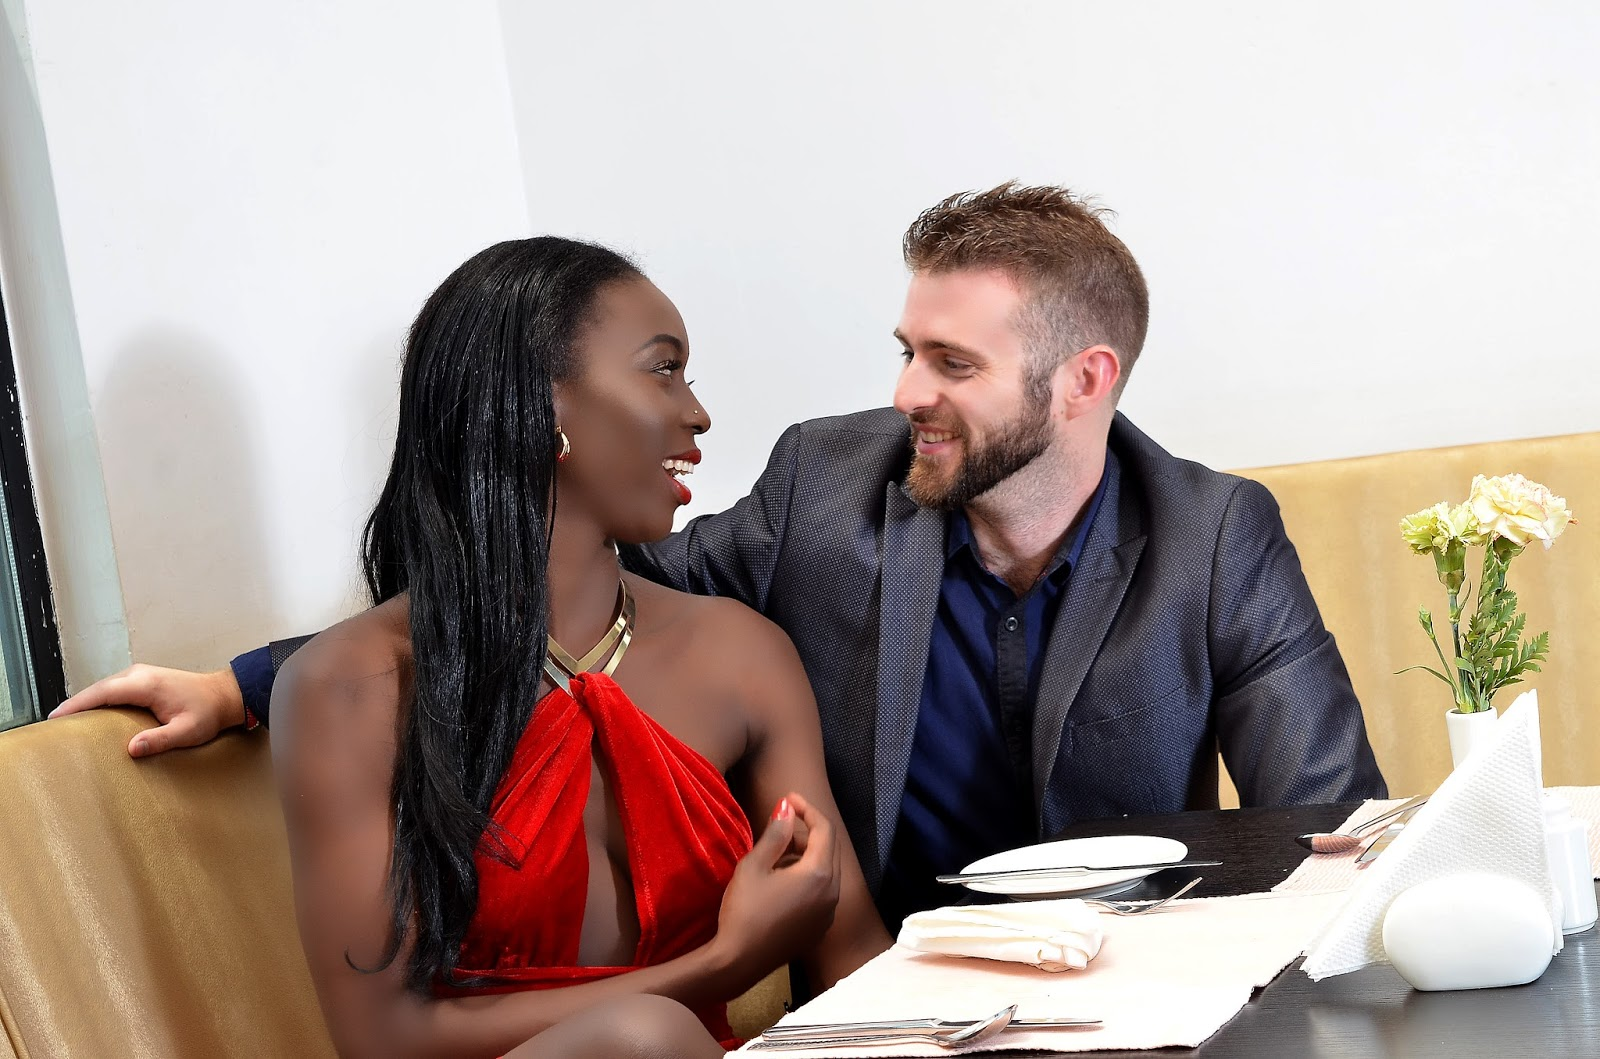 style with Ezil, date outfit, what to wear to a date, valentines 2017, date ideas, valentines date ideas, red dress, black dinner dress, denim circle skirt, open back crop top, peach floral circle dress, dinner dresses, what to wear to lunch, movie date outfits, Kenyan fashion, Kenyan fashion blogger, black women, Ezil